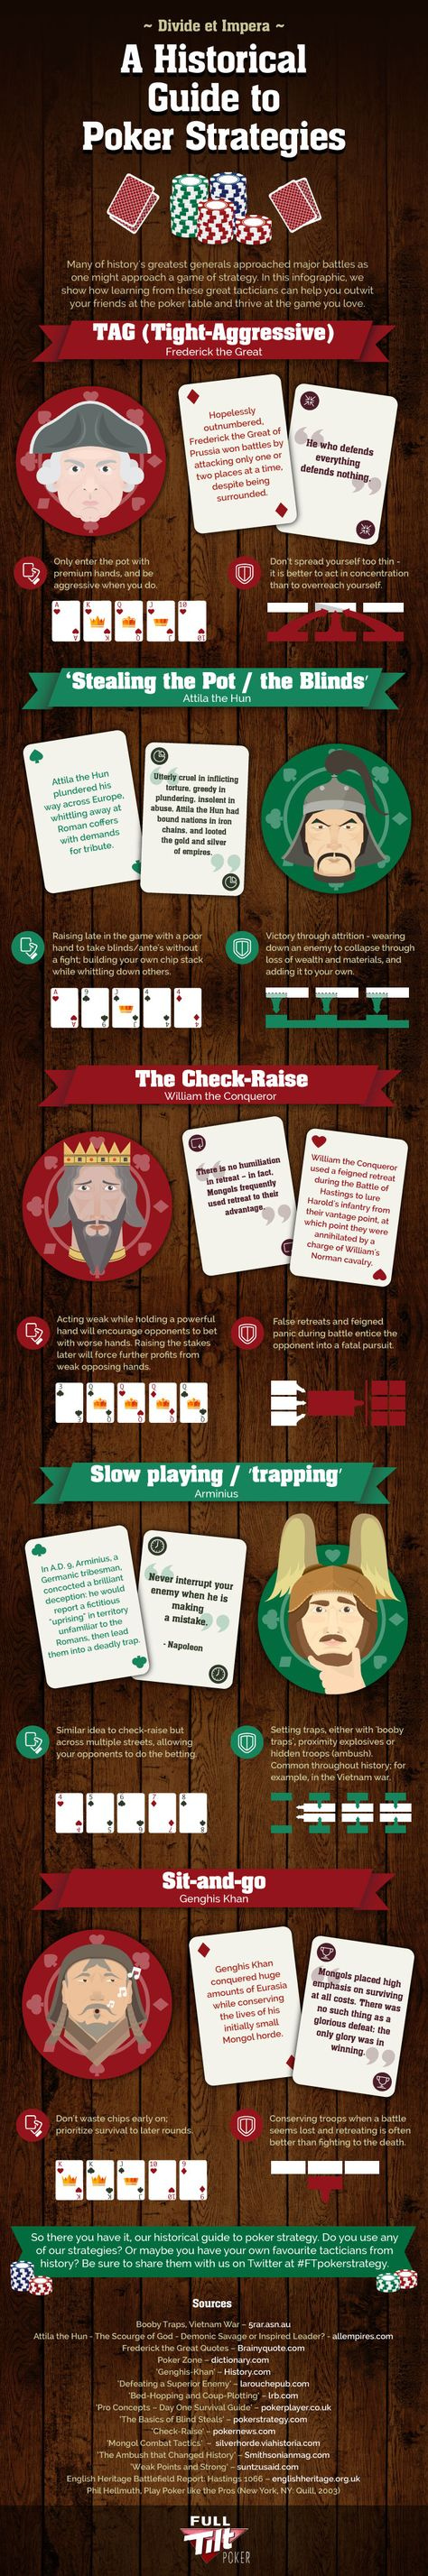 A Historical Guide to Poker Strategies   #infographic #Poker #Game